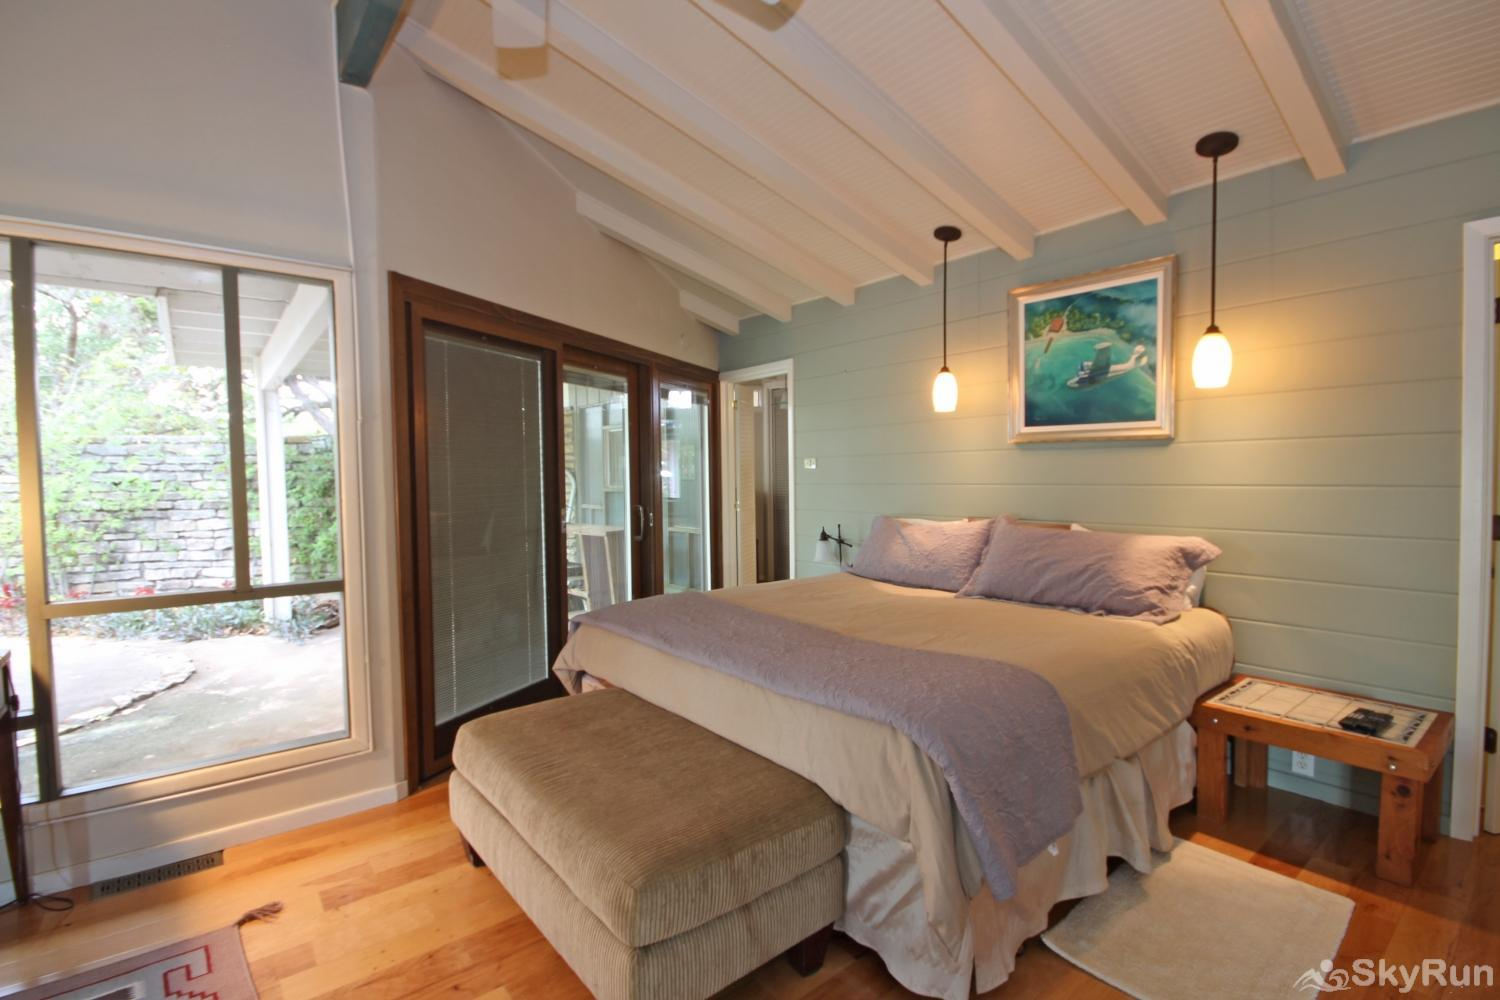 SKY VIEW LAKE HOUSE Master bedroom with king and attached bath